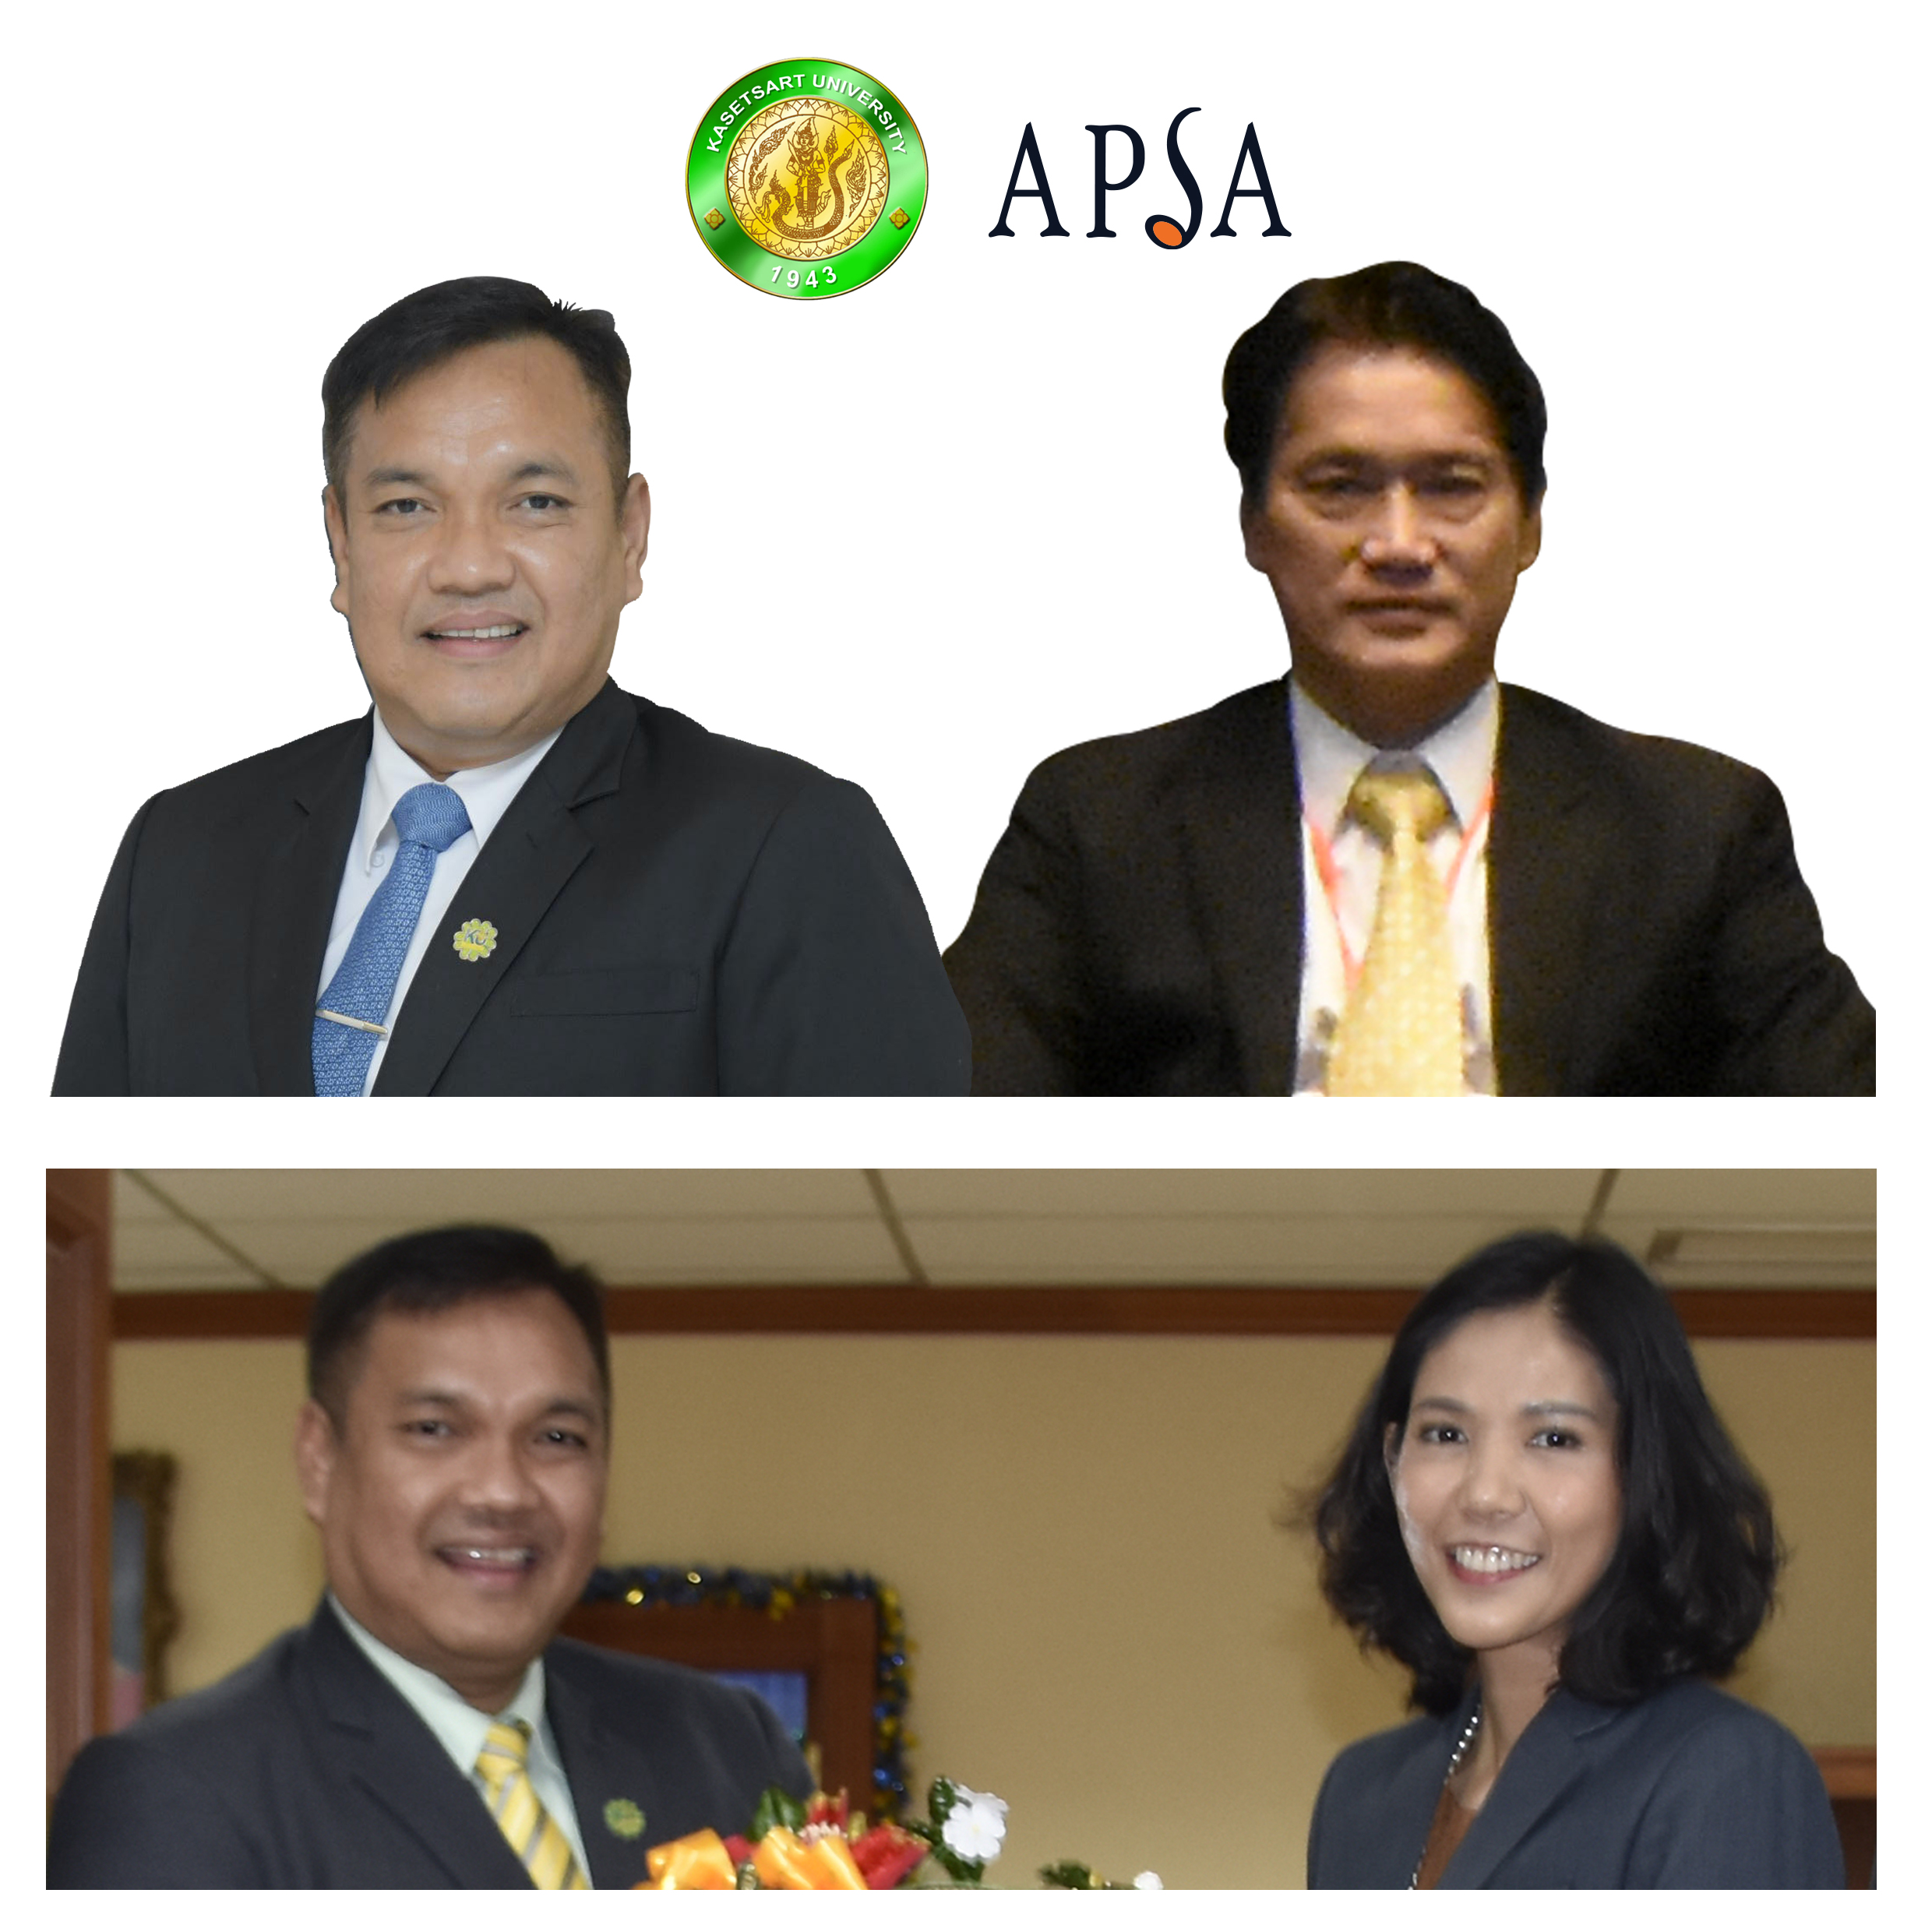 APSA and Kasetsart University ink MoU to promote sustainable agriculture